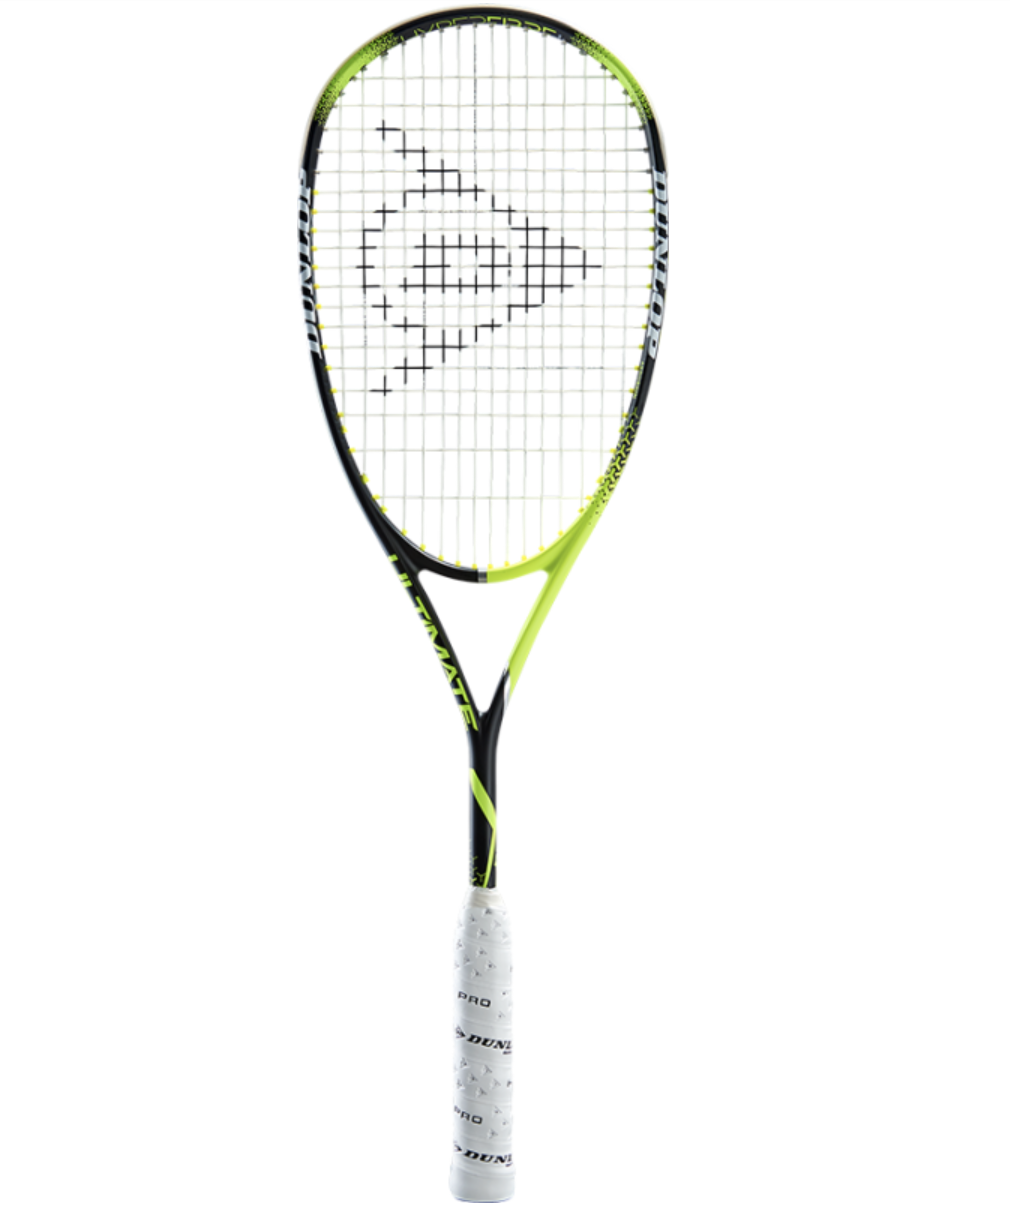 cb7c2039afc690 Dunlop Precision Ultimate Squash Racket (2018/19) - Just Squash